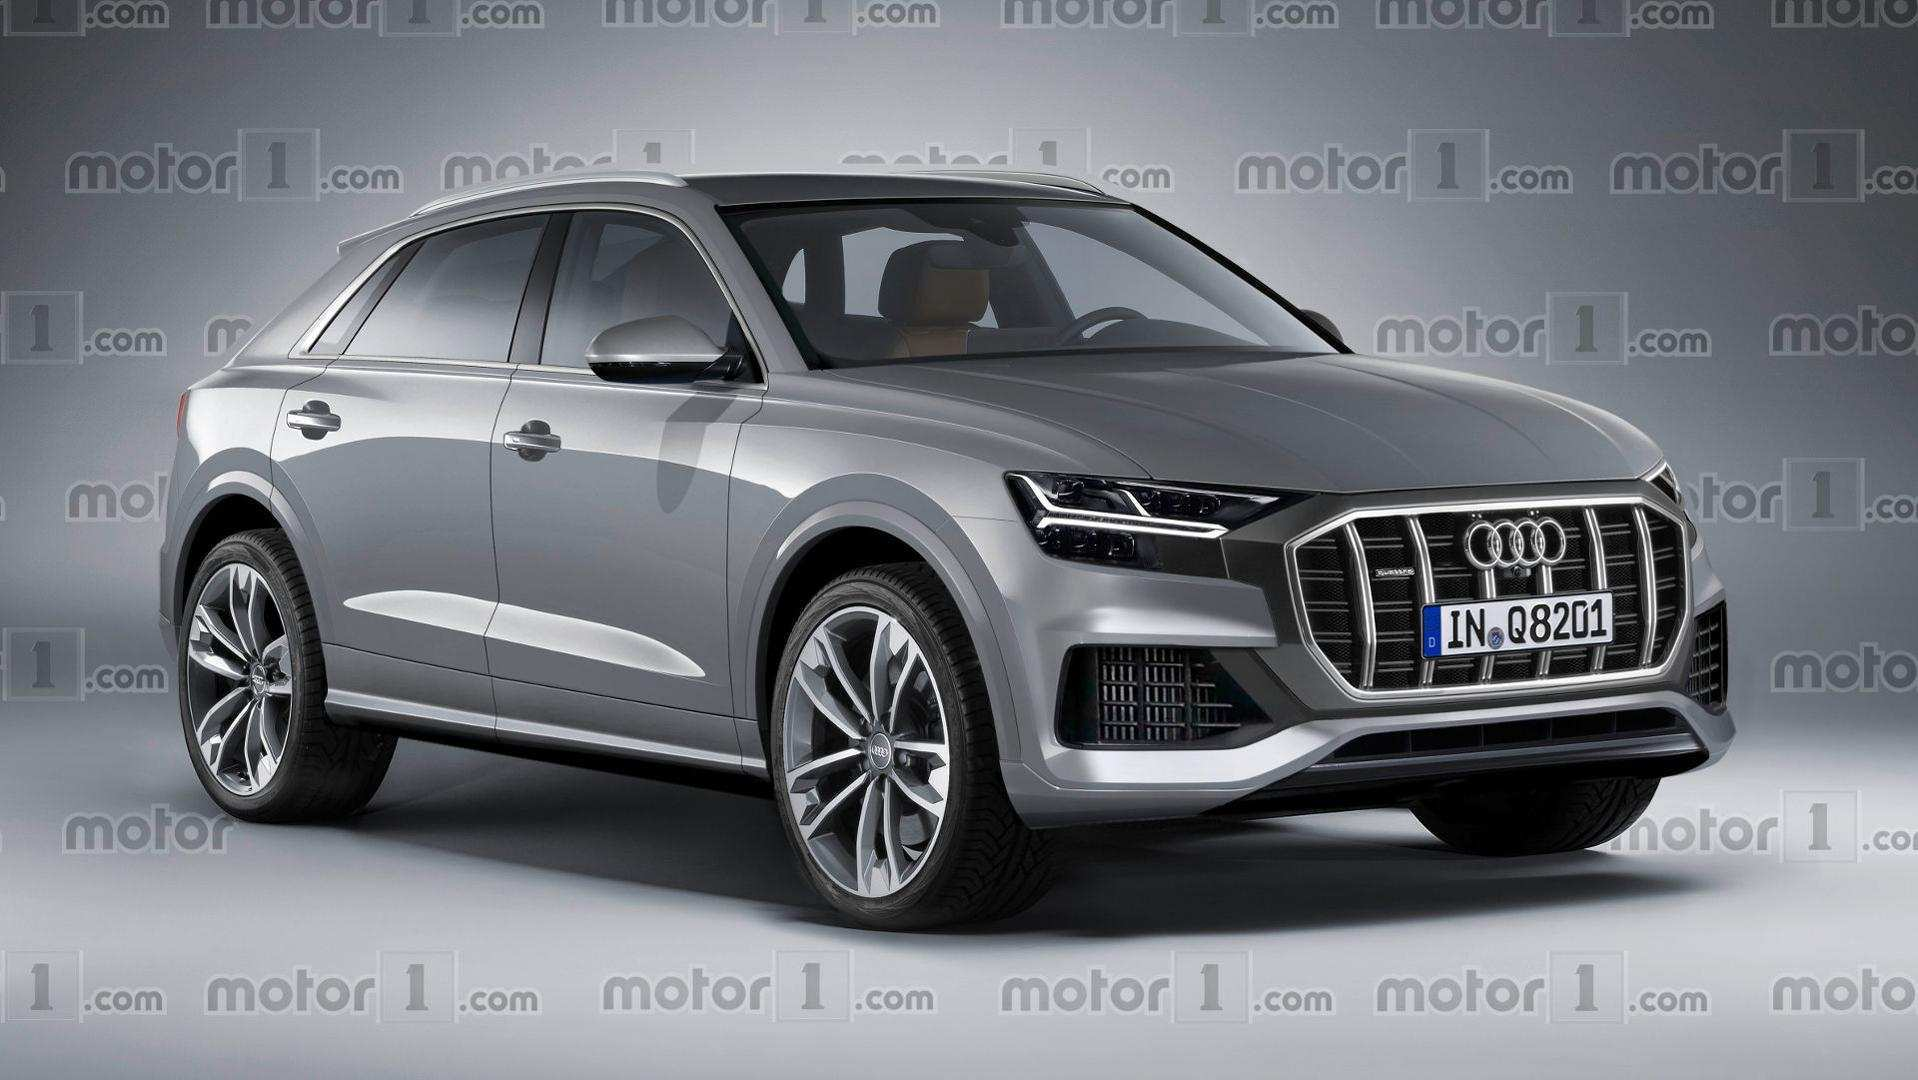 20 New 2019 Audi Models Prices for 2019 Audi Models